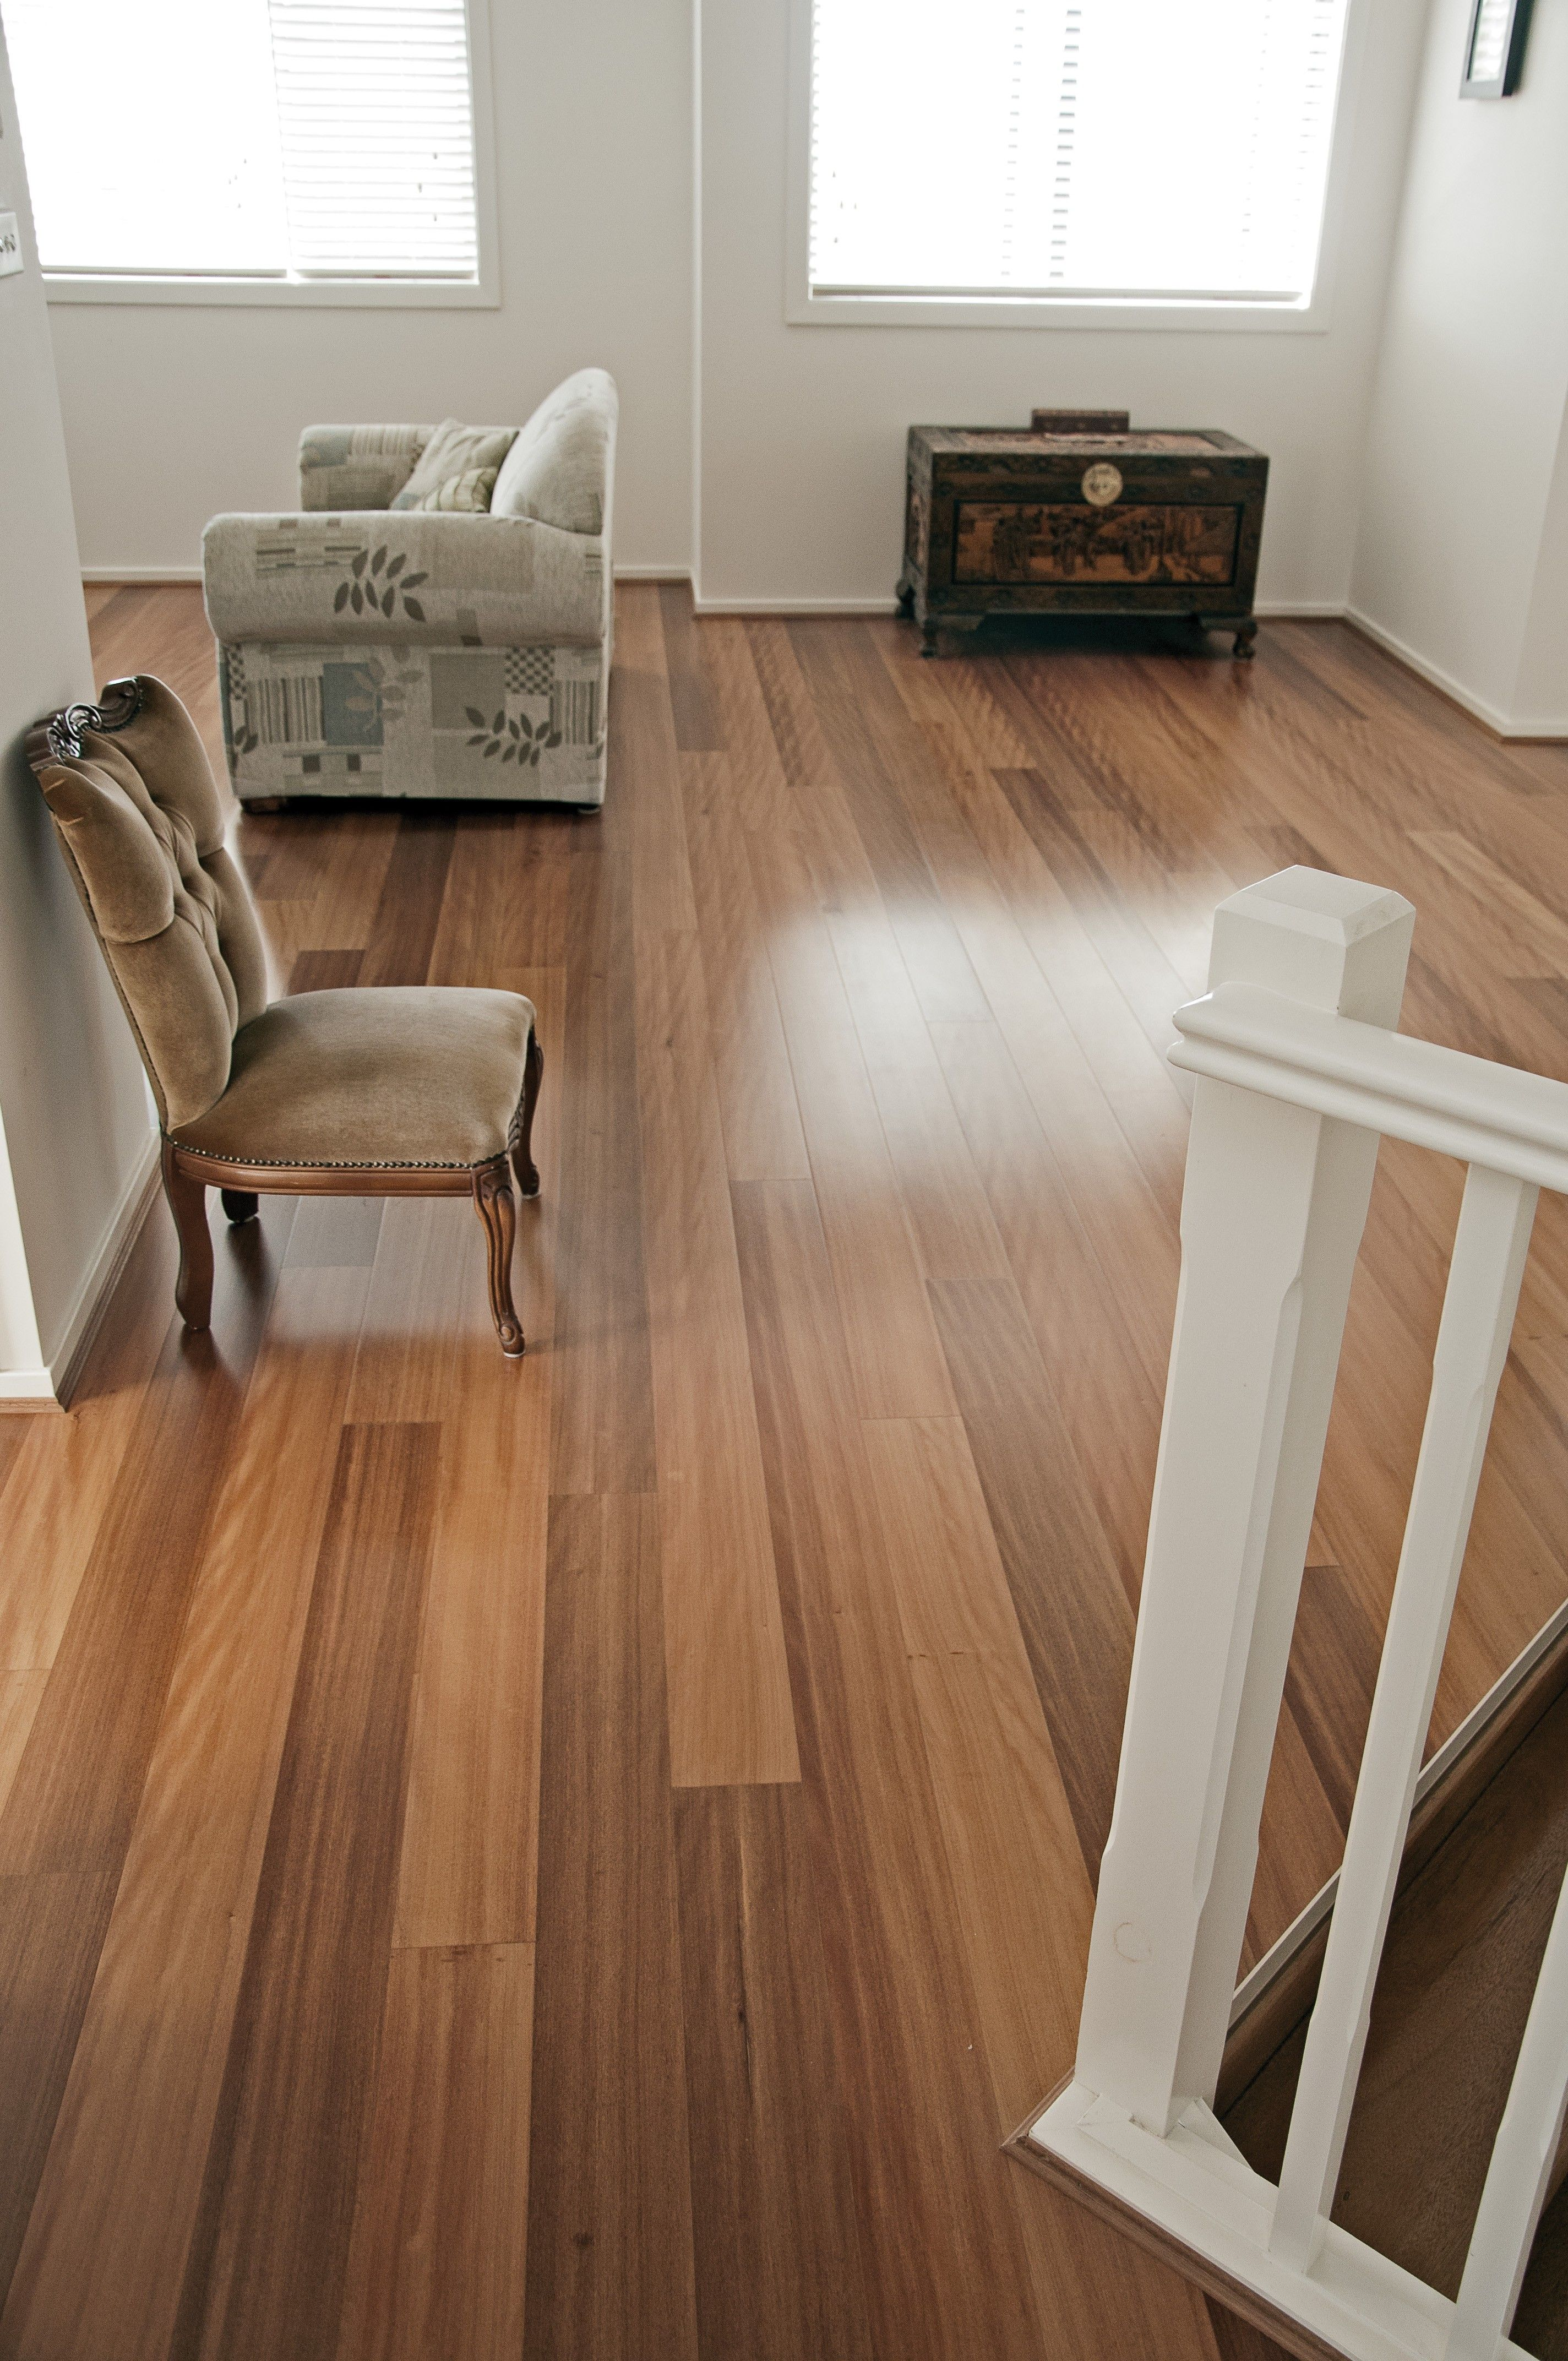 Brushbox (Timbernate) Timber Floors delivered anywhere in